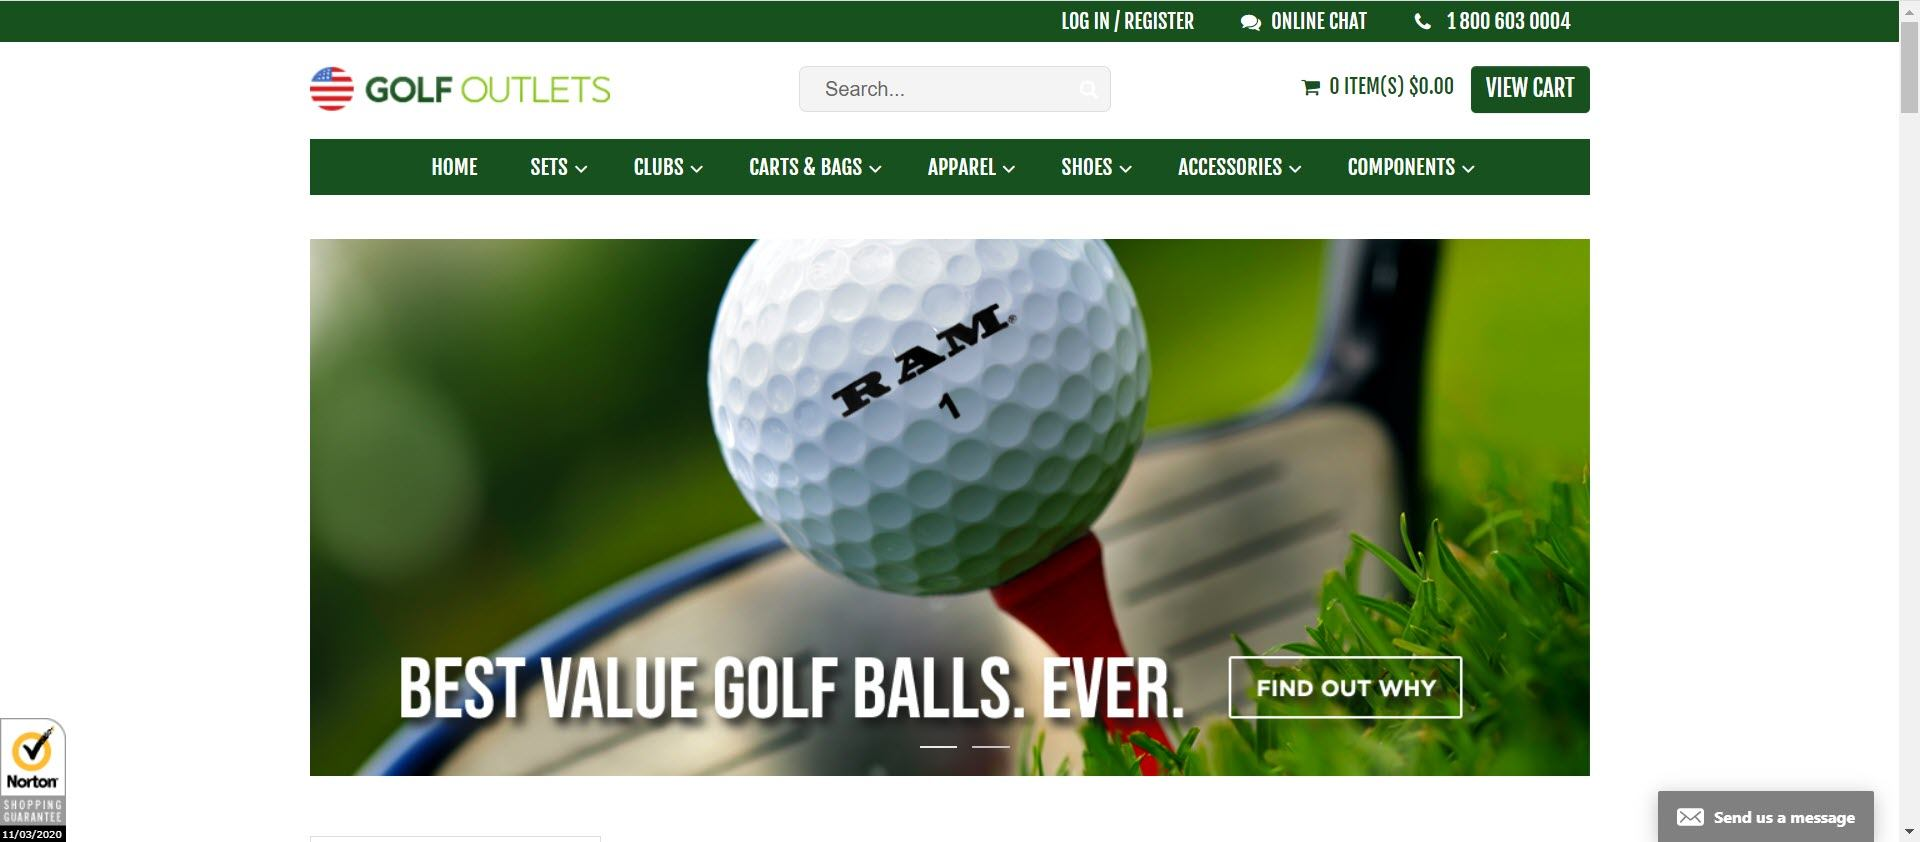 Best Golf Affiliate Programs - Golf Outlets USA